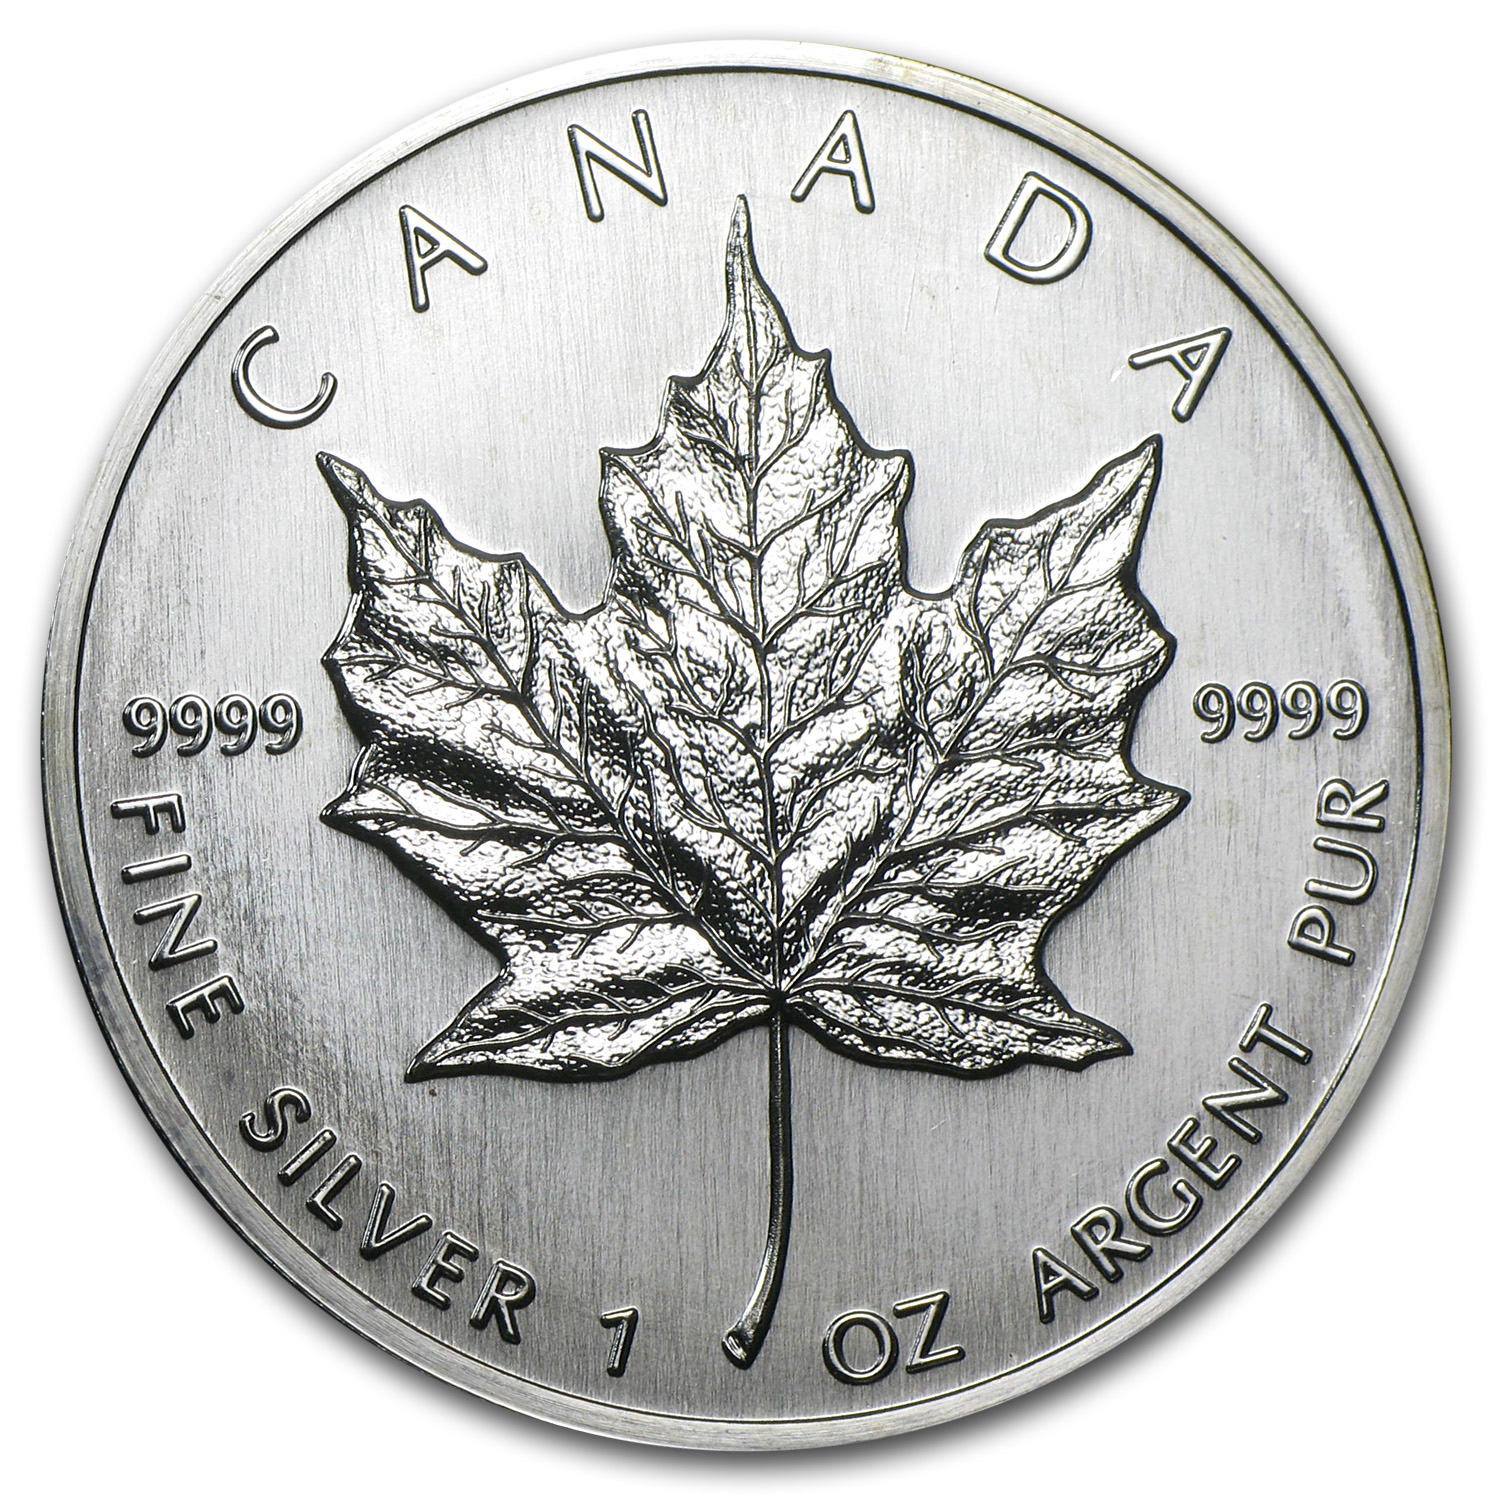 1989 1 oz Silver Canadian Maple Leaf (Brilliant Uncirculated)